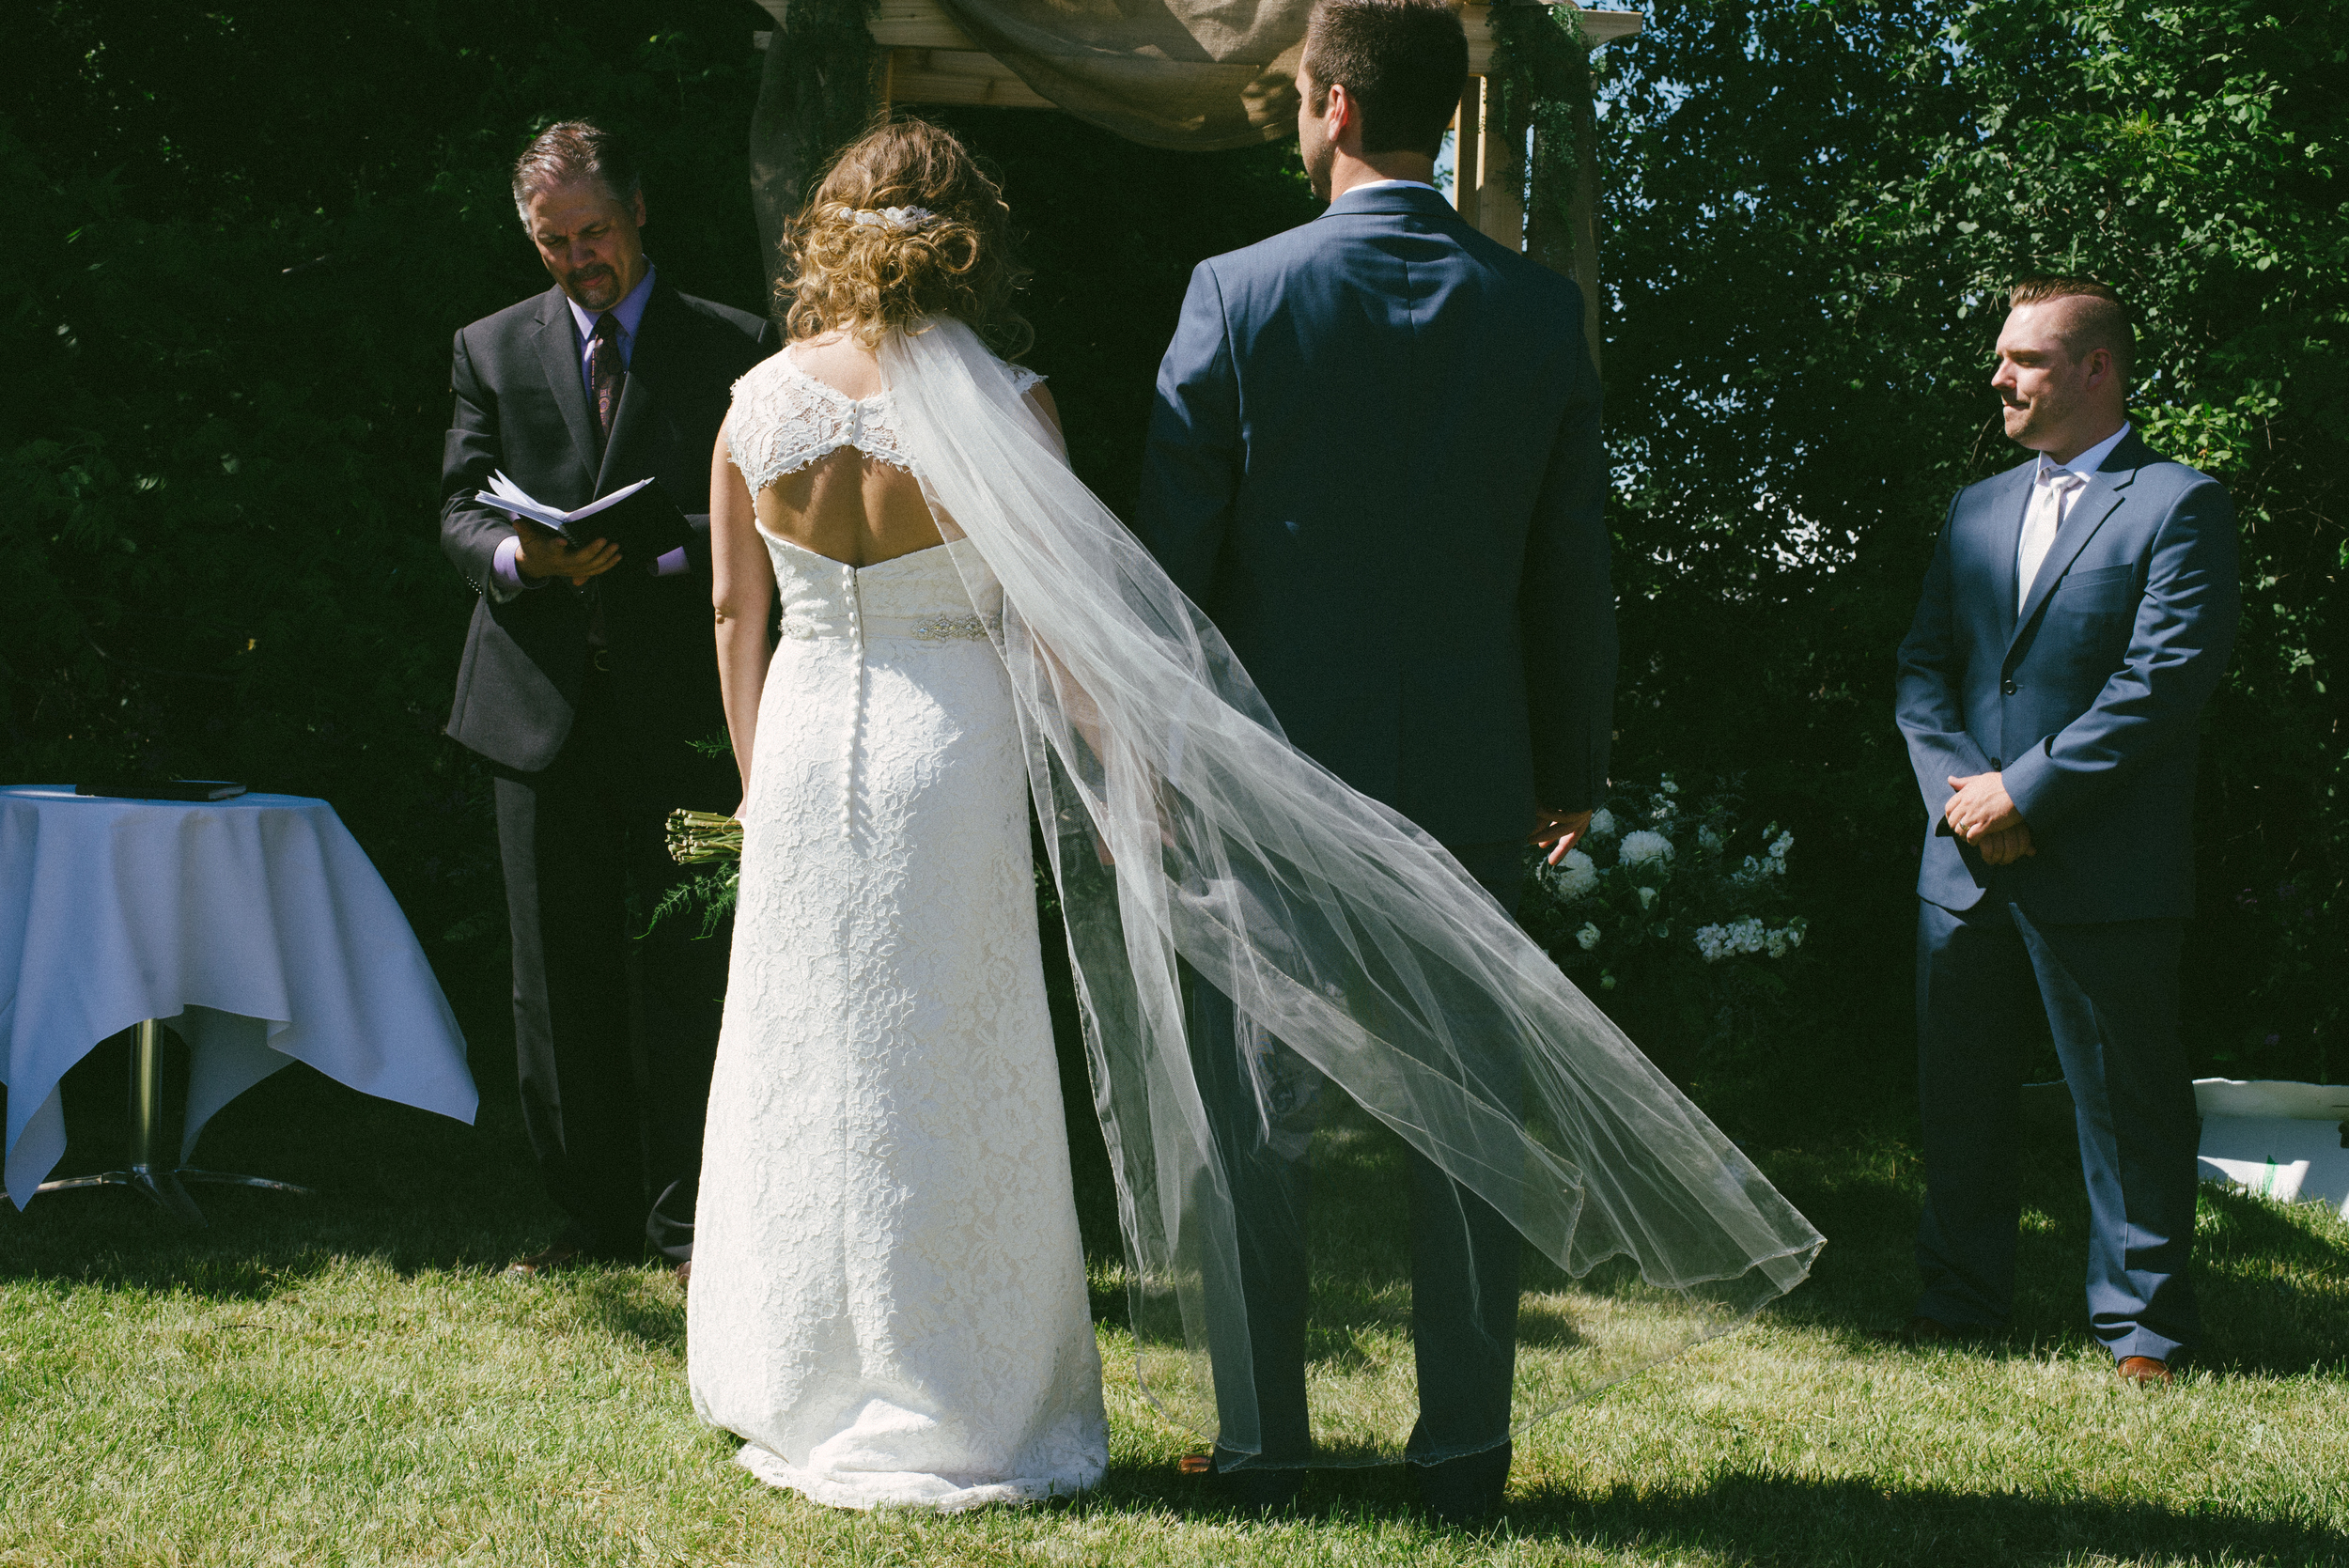 armstrong-wedding-293.jpg